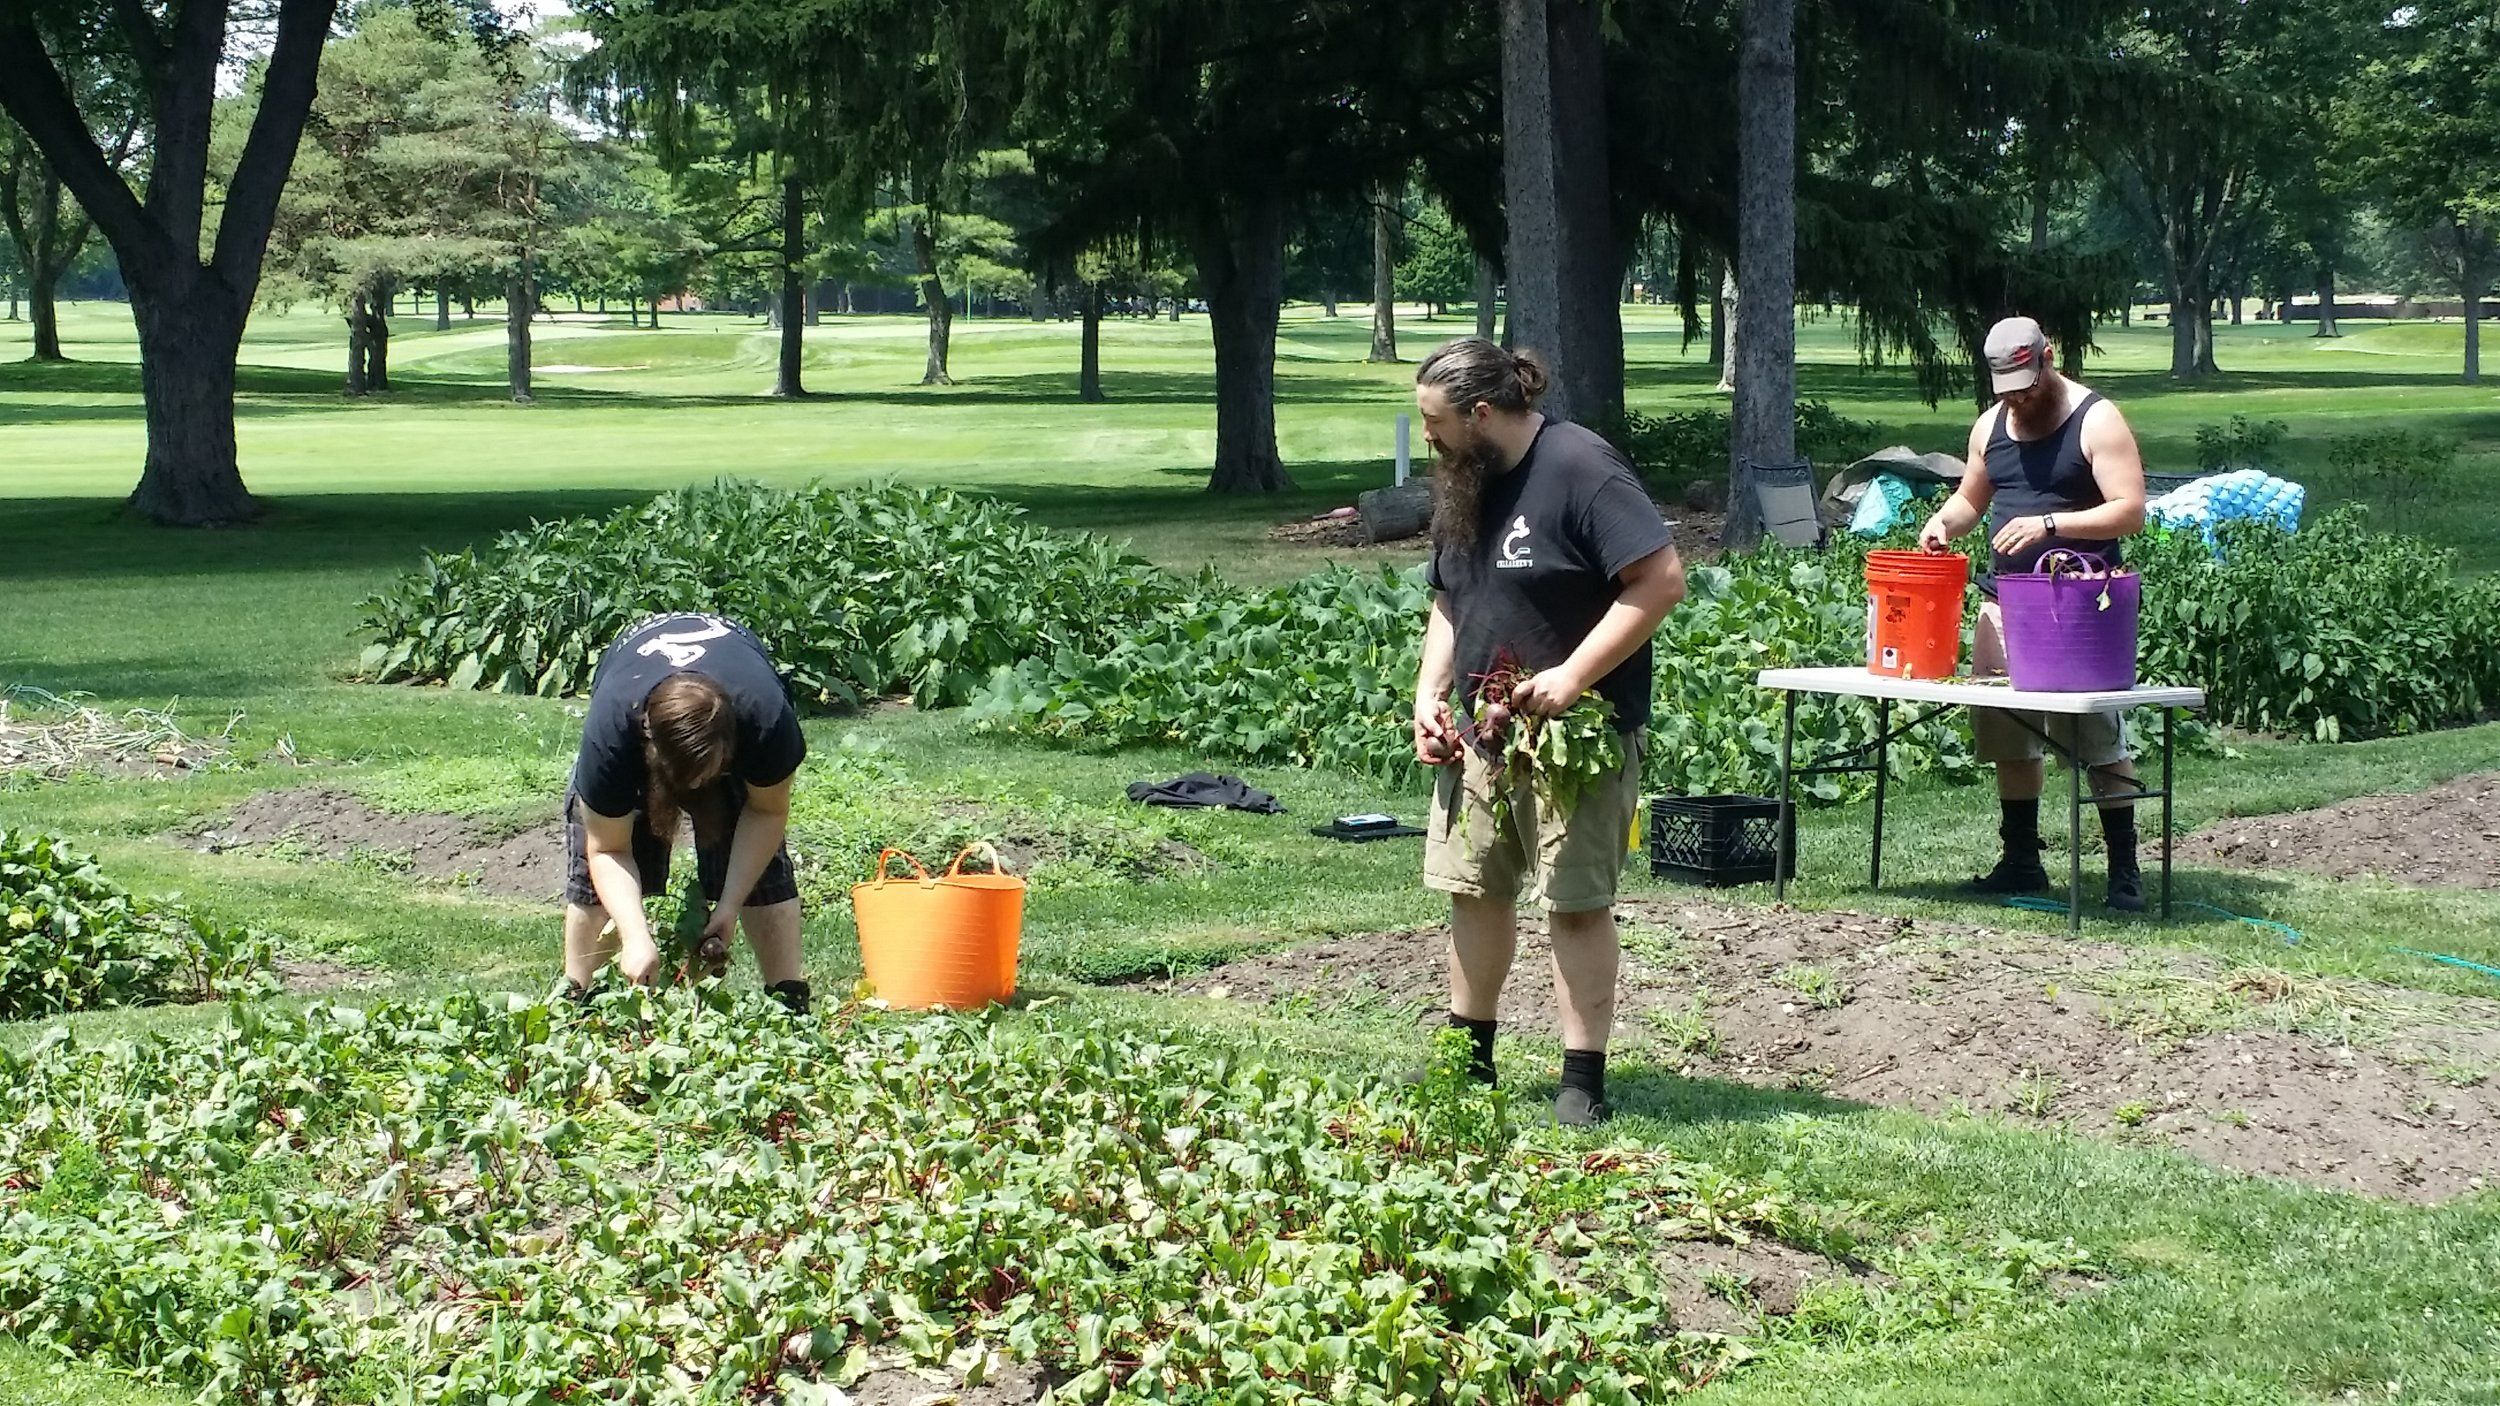 Dominic, Ian, and Andrew from Cellarmen's Meadery helping out with the big beet harvest!